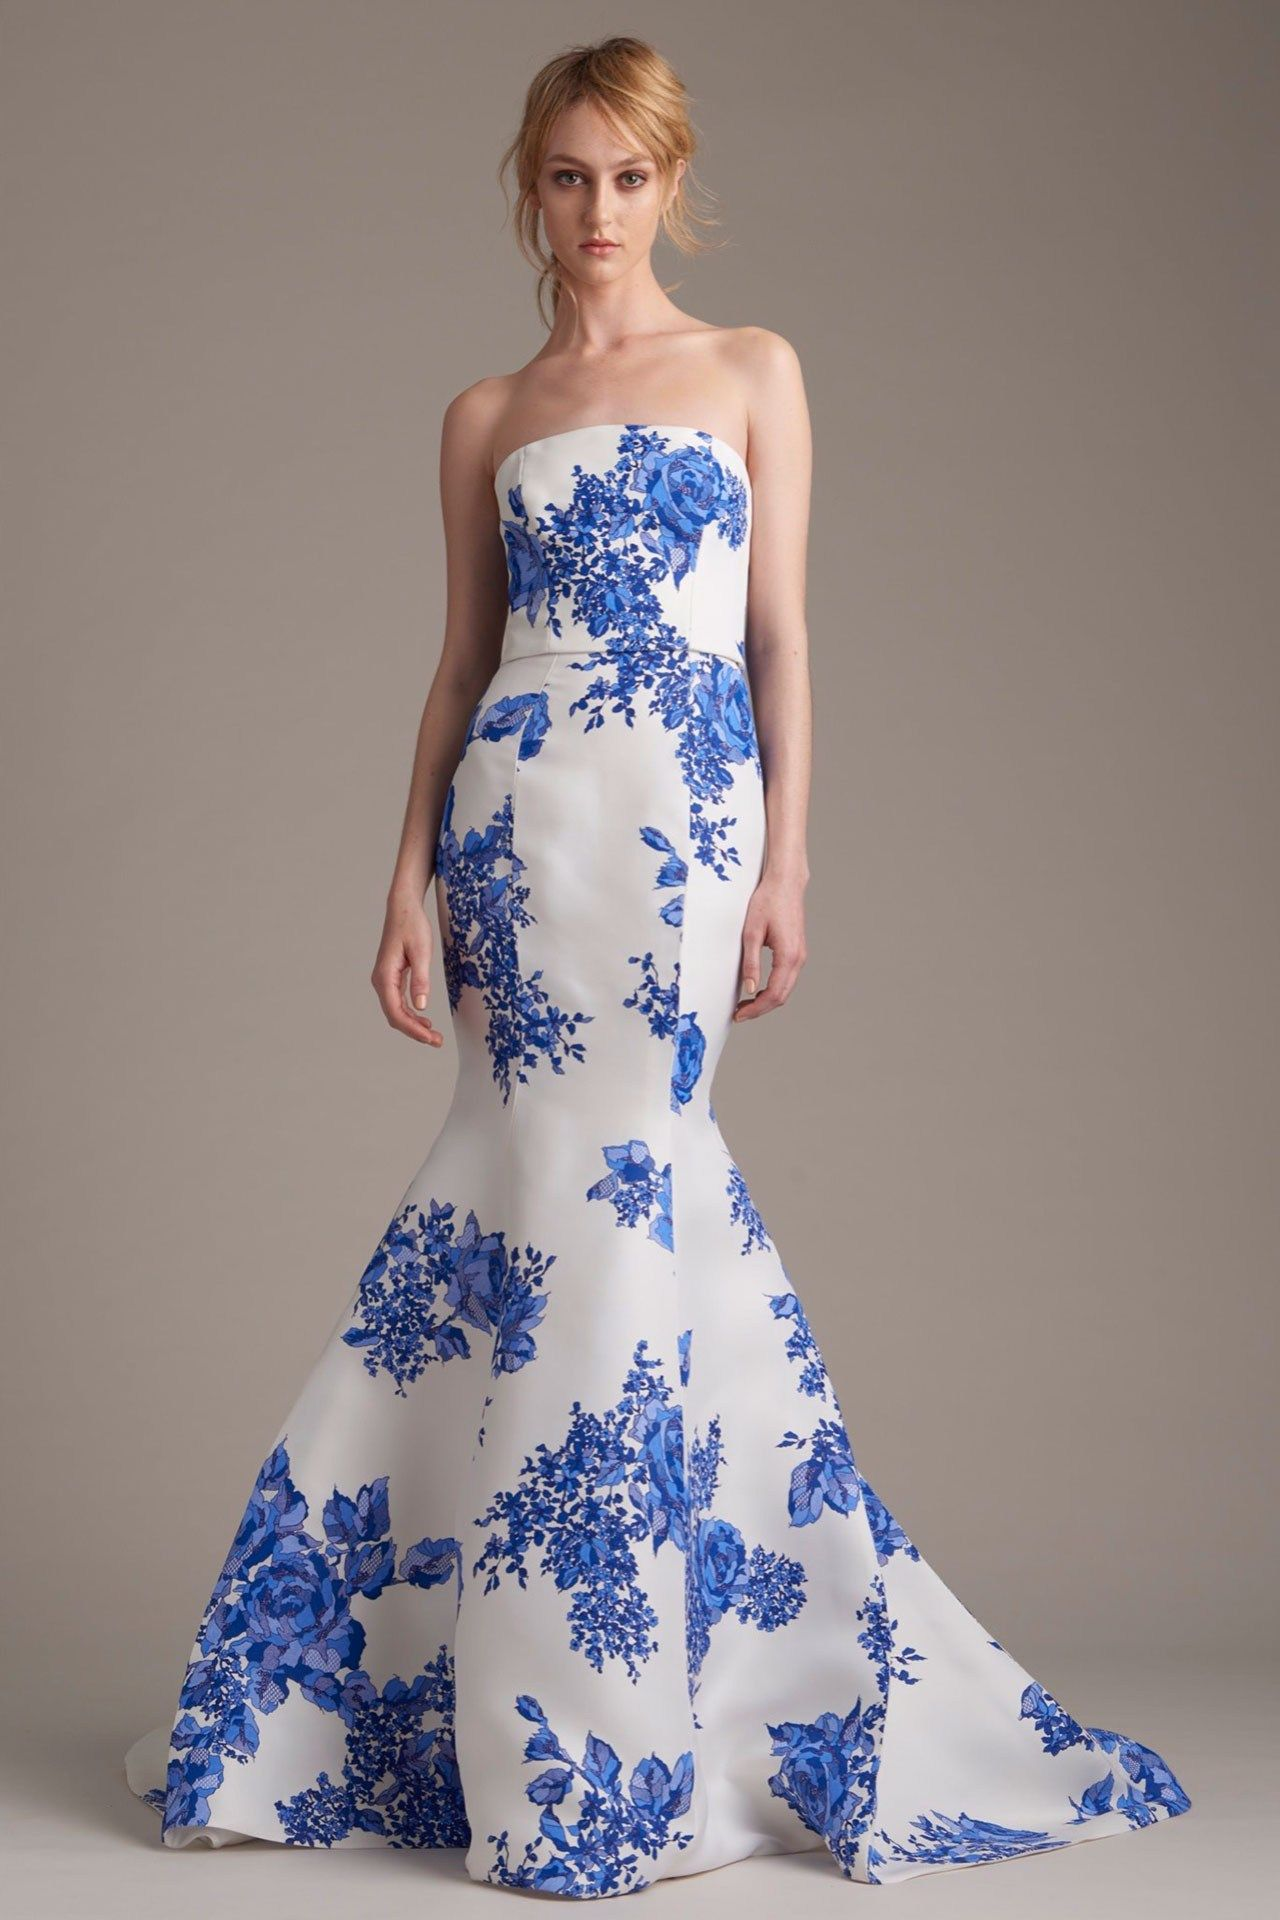 Long floral dress for wedding  floral wedding dress inspiration resort  collections